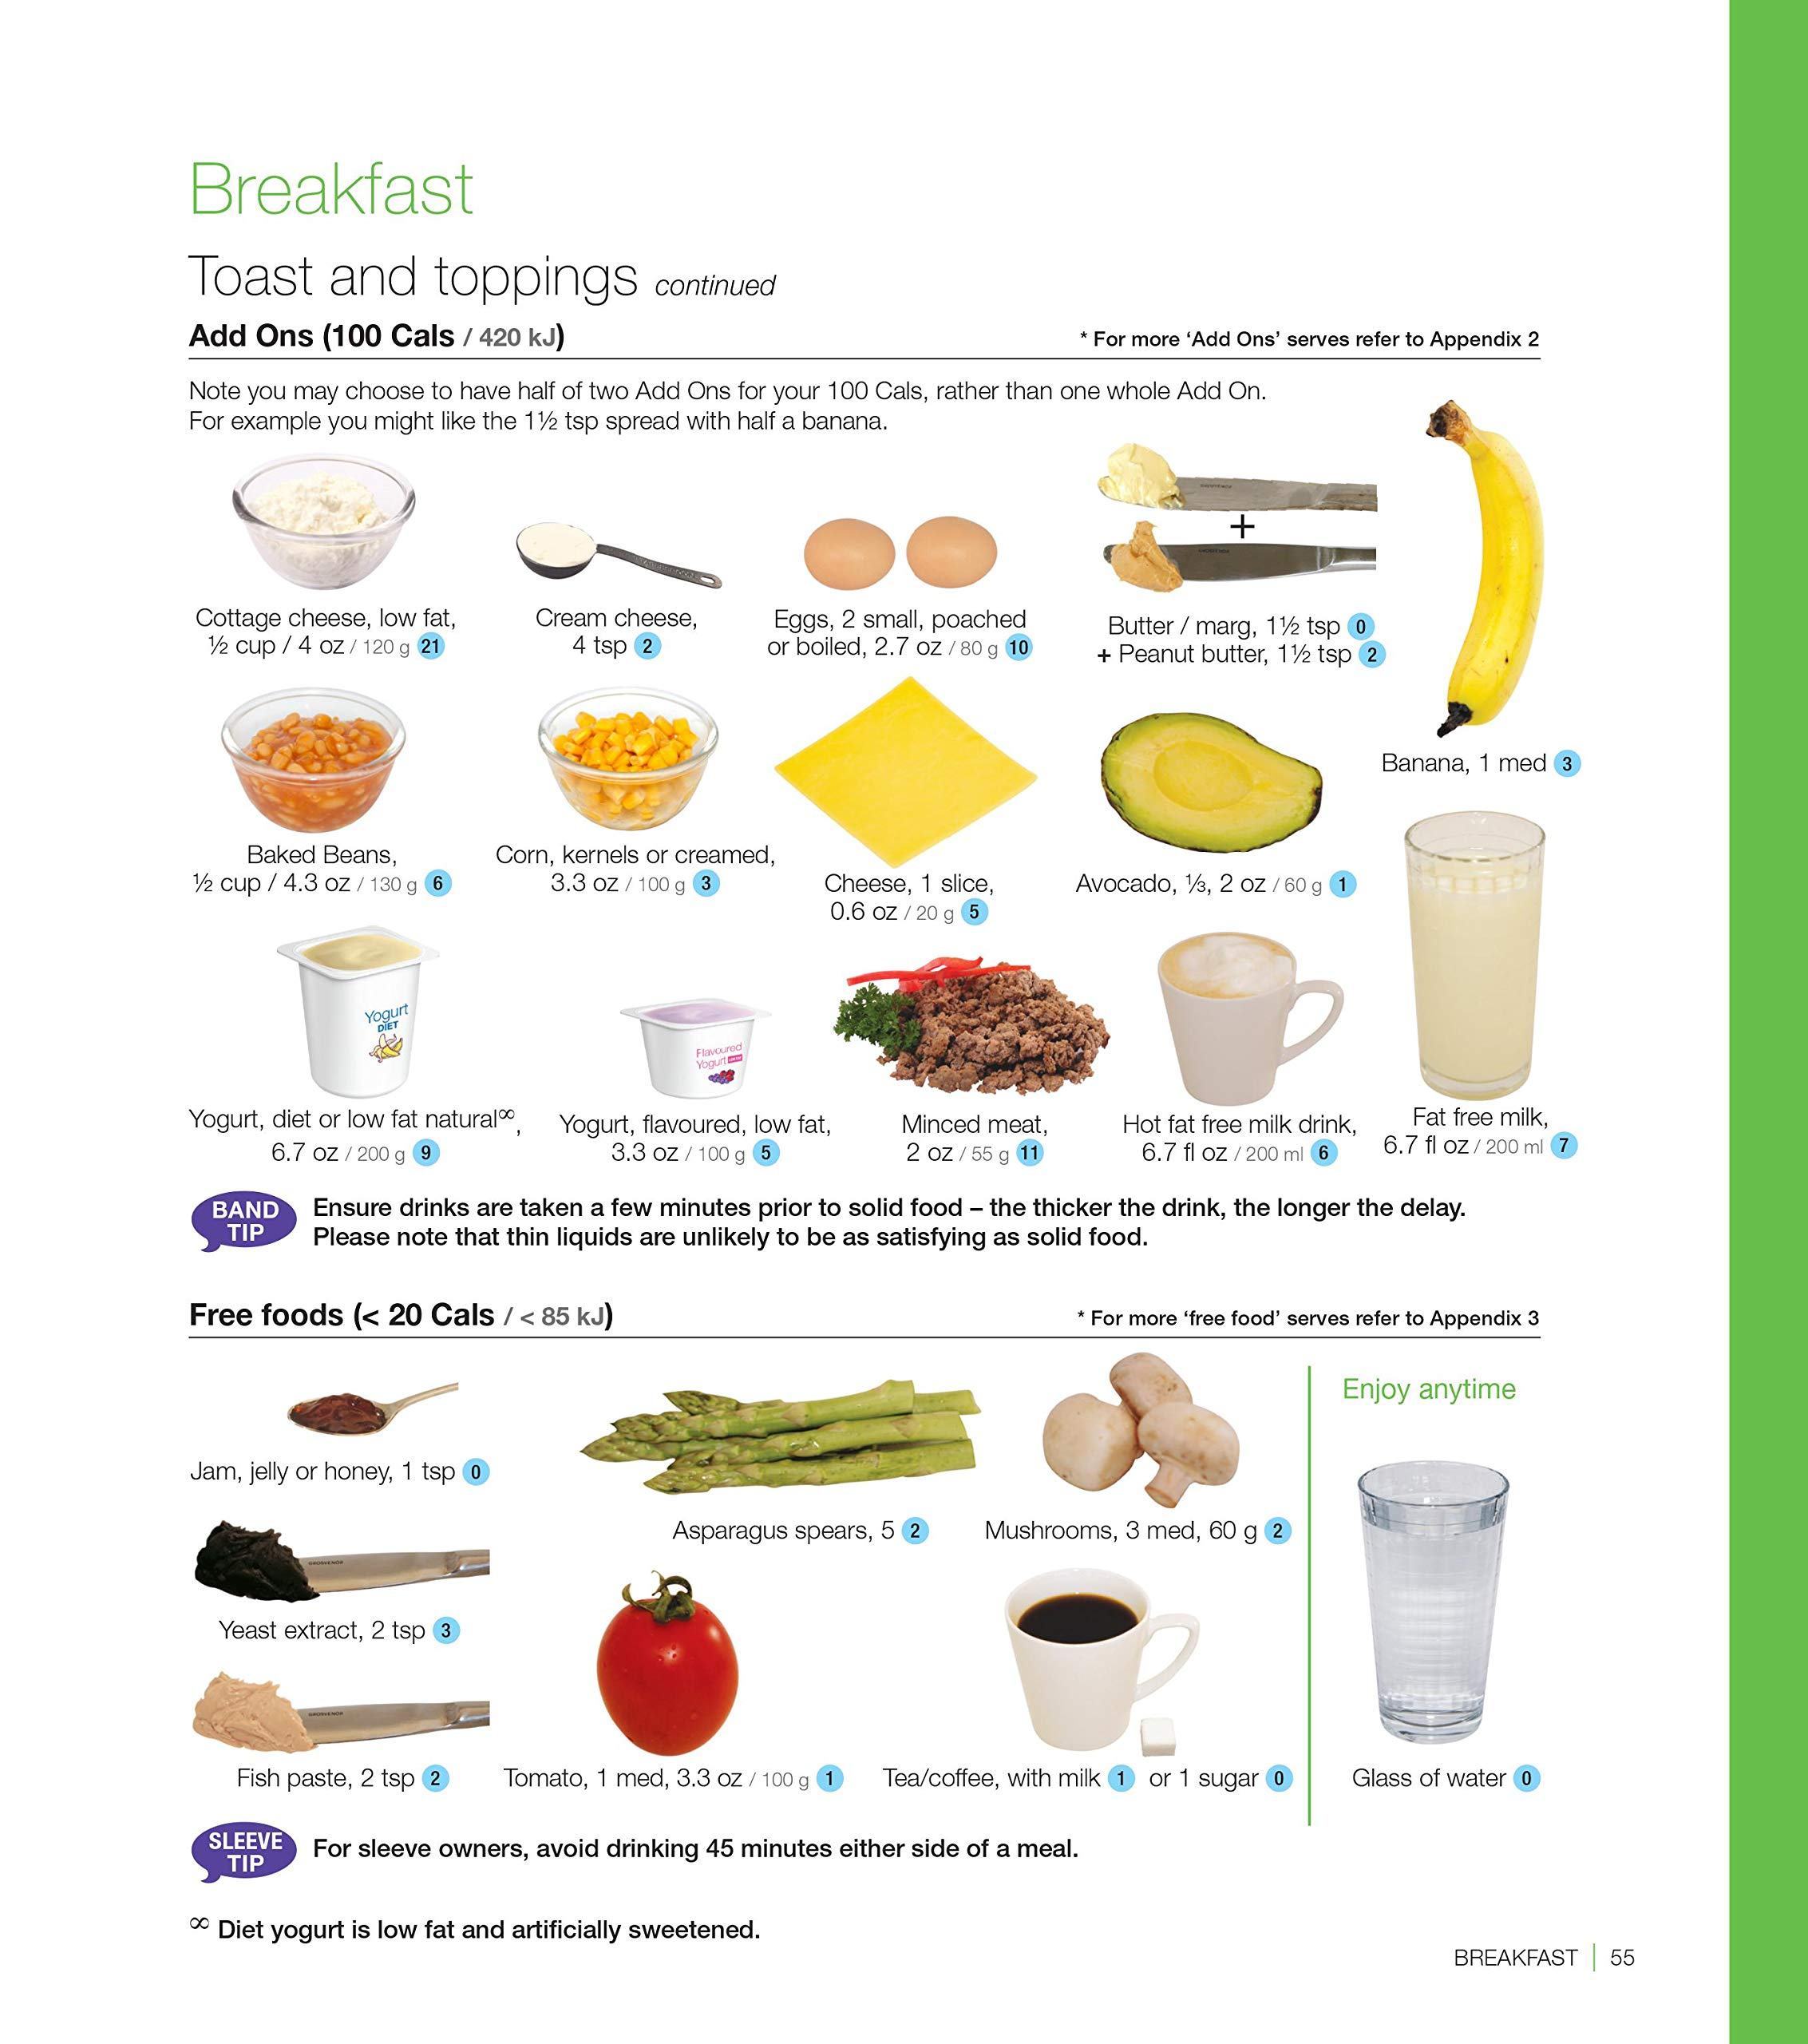 Bariatric Cookbook Surgery Weight Loss Program Kit Easy Tools for Portion Control Dieting After Sleeve Gastrectomy, Gastric Bypass, Balloon & Banding & Free Bonus Vegetable Cookbook by Portion Perfection (Image #7)